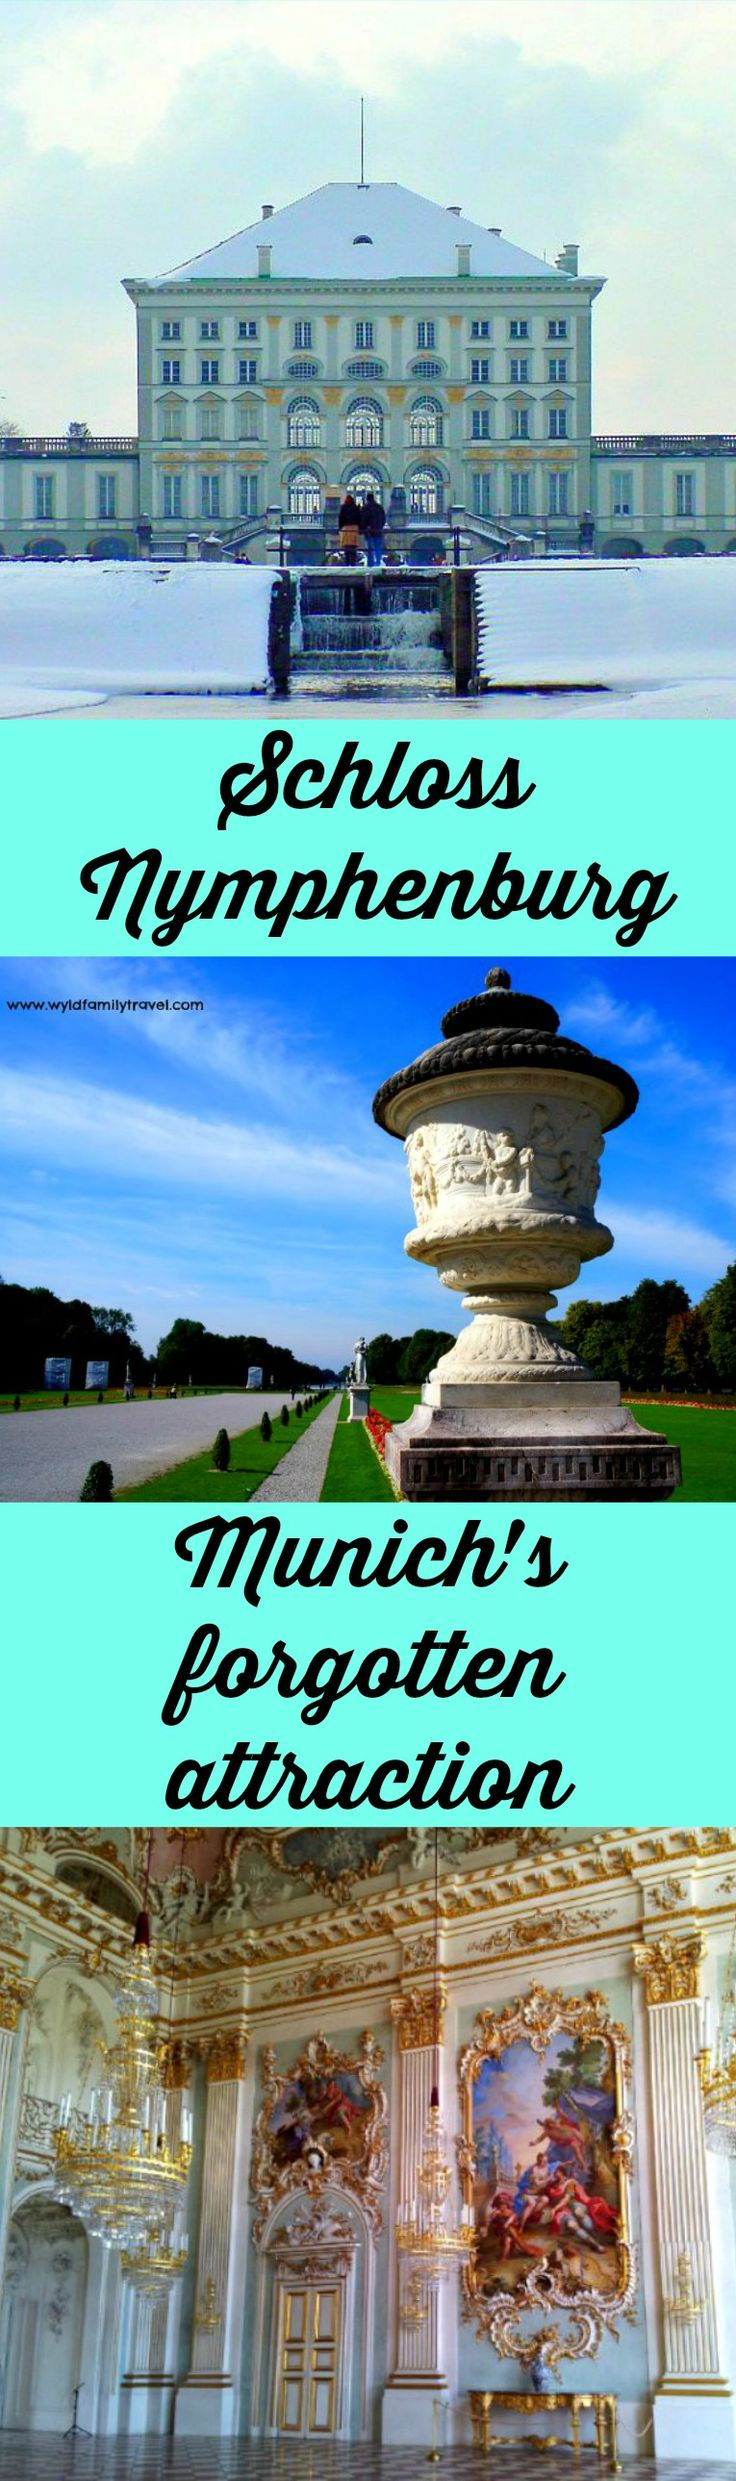 Nymphenburg Palace is located In Munich Germany. I call Nymphenburg the forgotten attraction of Munich. A  beautiful palace located in the outer suburbs.